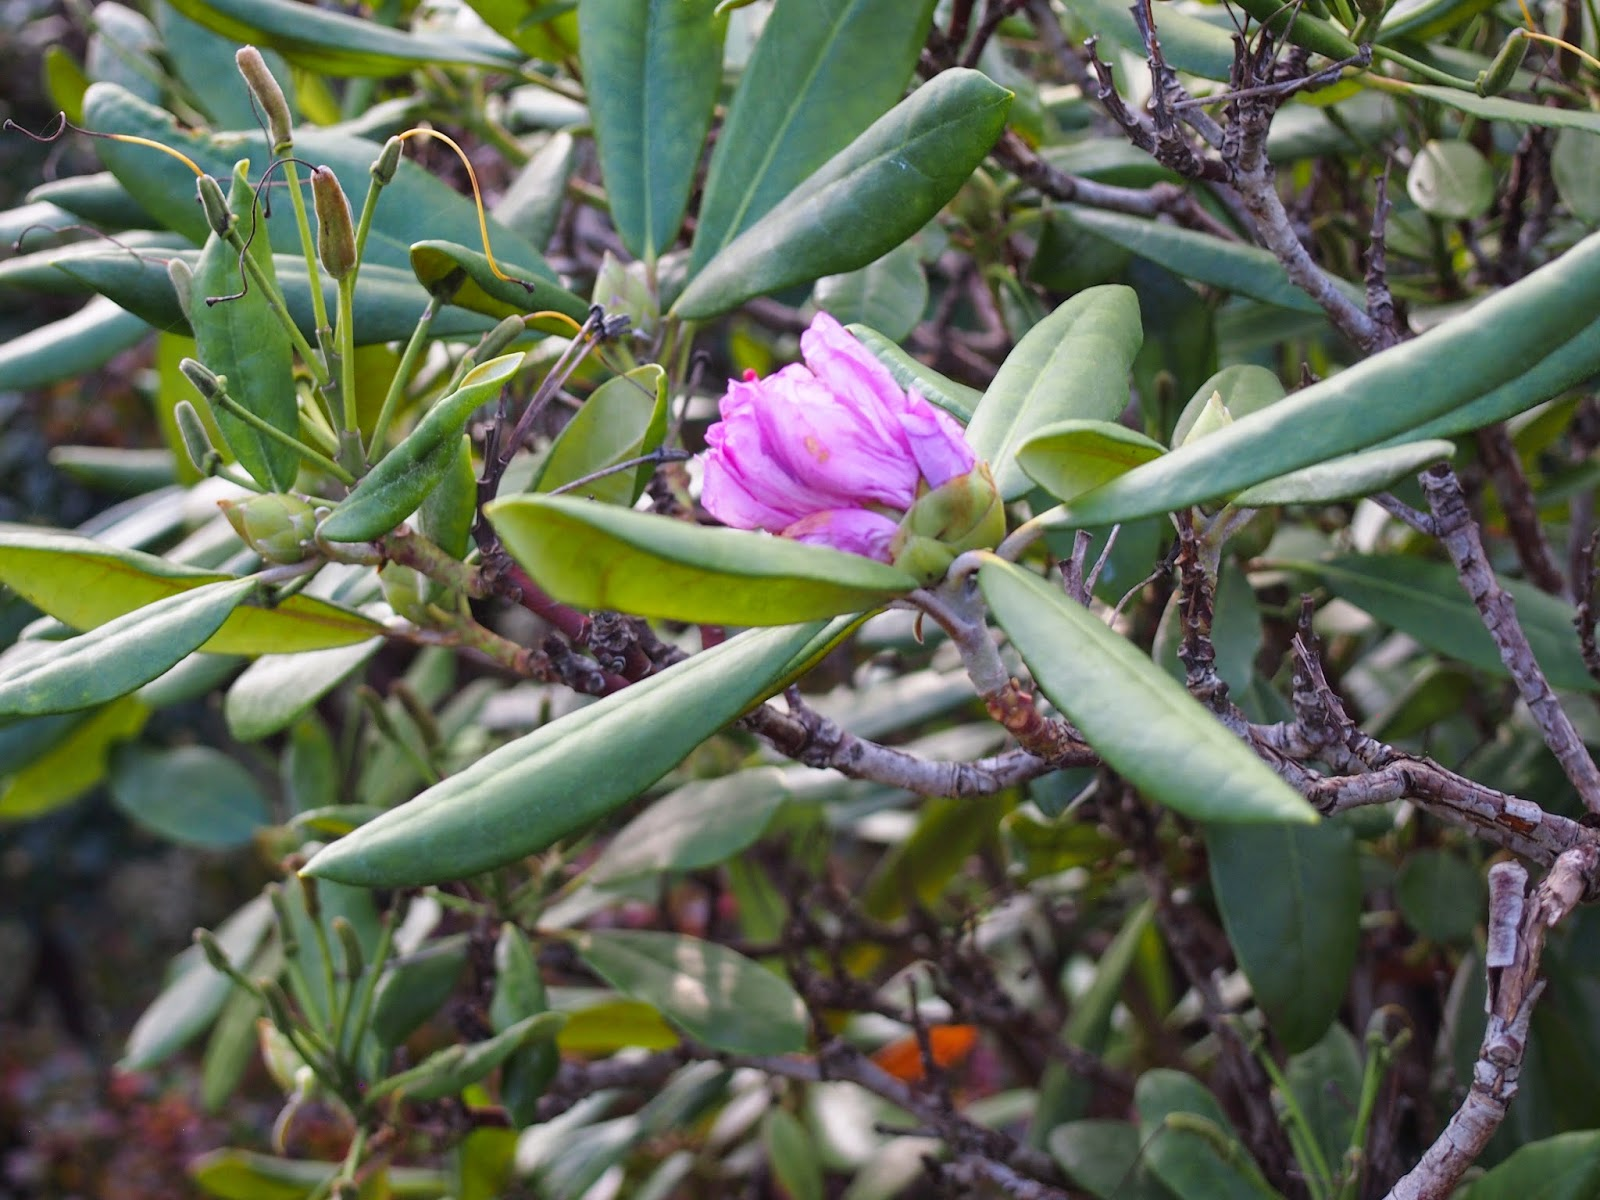 a pink rhododendron flower opening